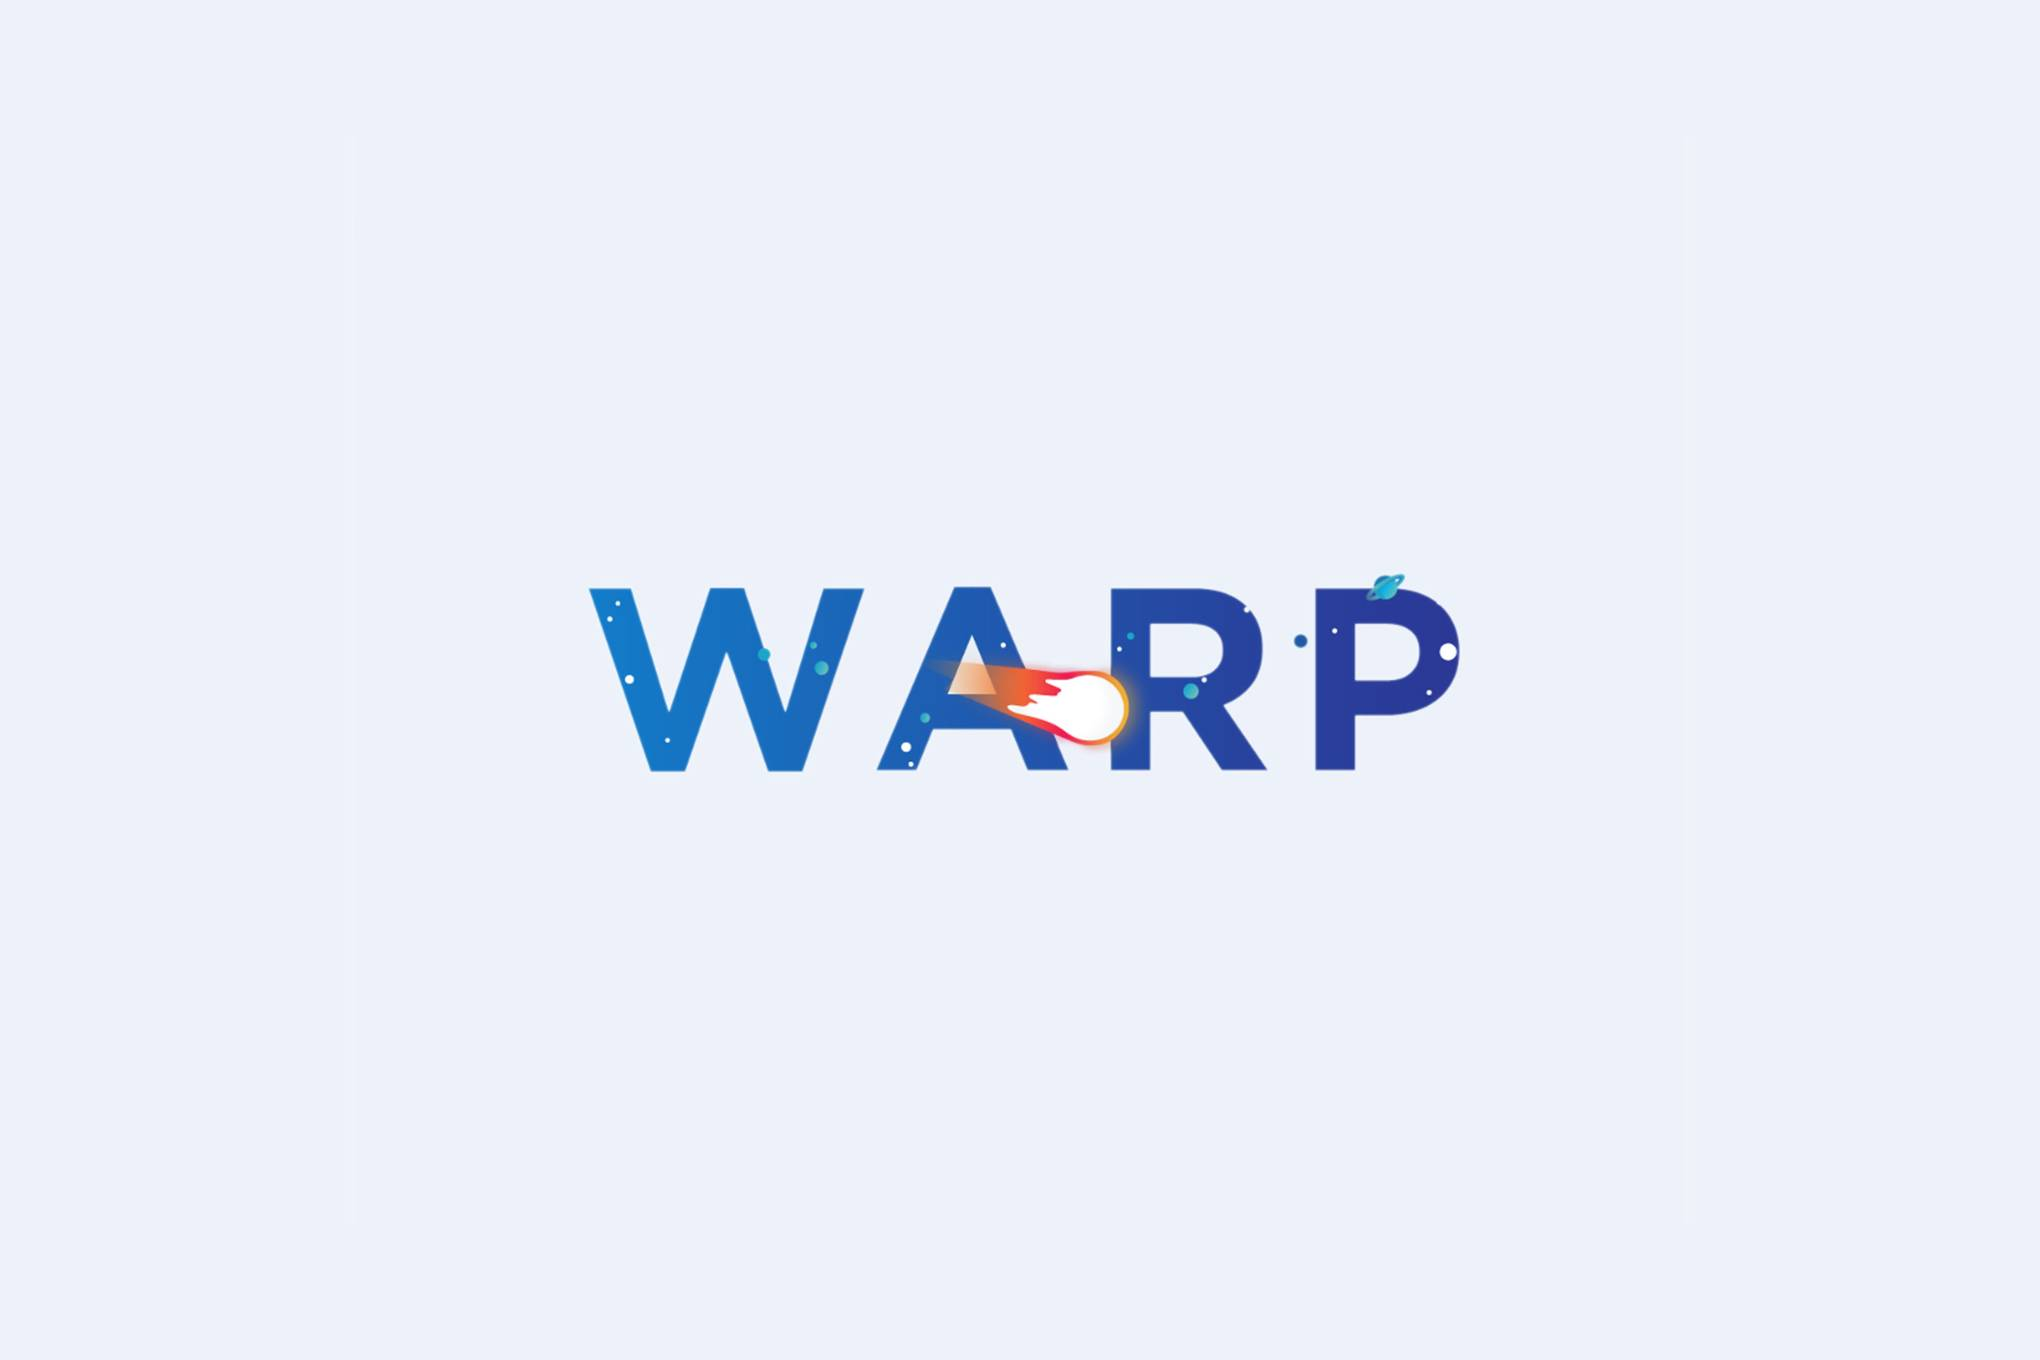 Cloudflare 1.1.1.1 with Warp review: faster browsing, but not a real VPN